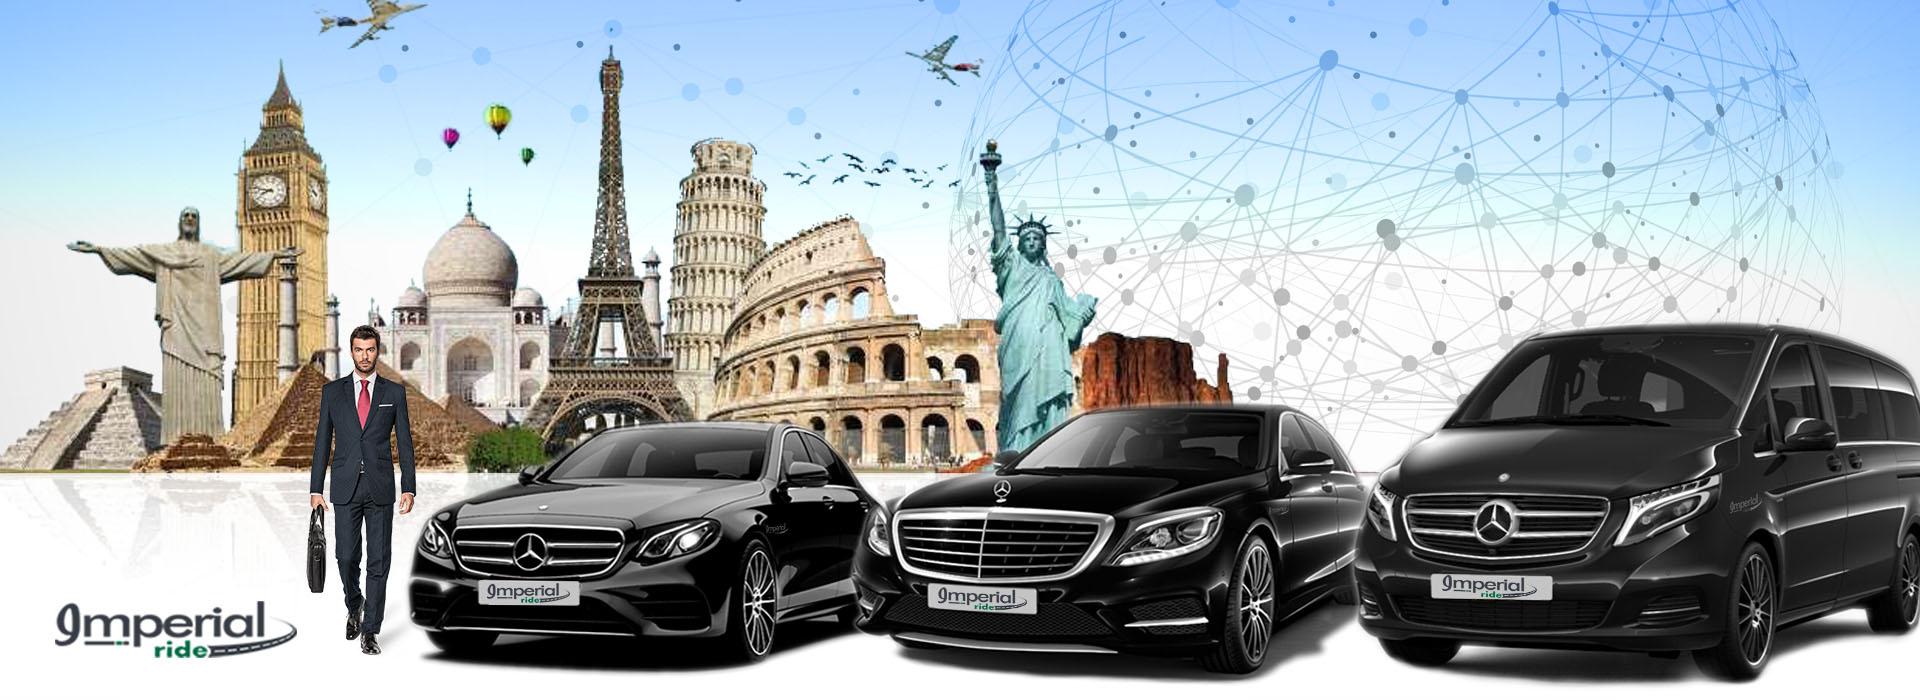 Global Chauffeur Services - Global Transfer solutions